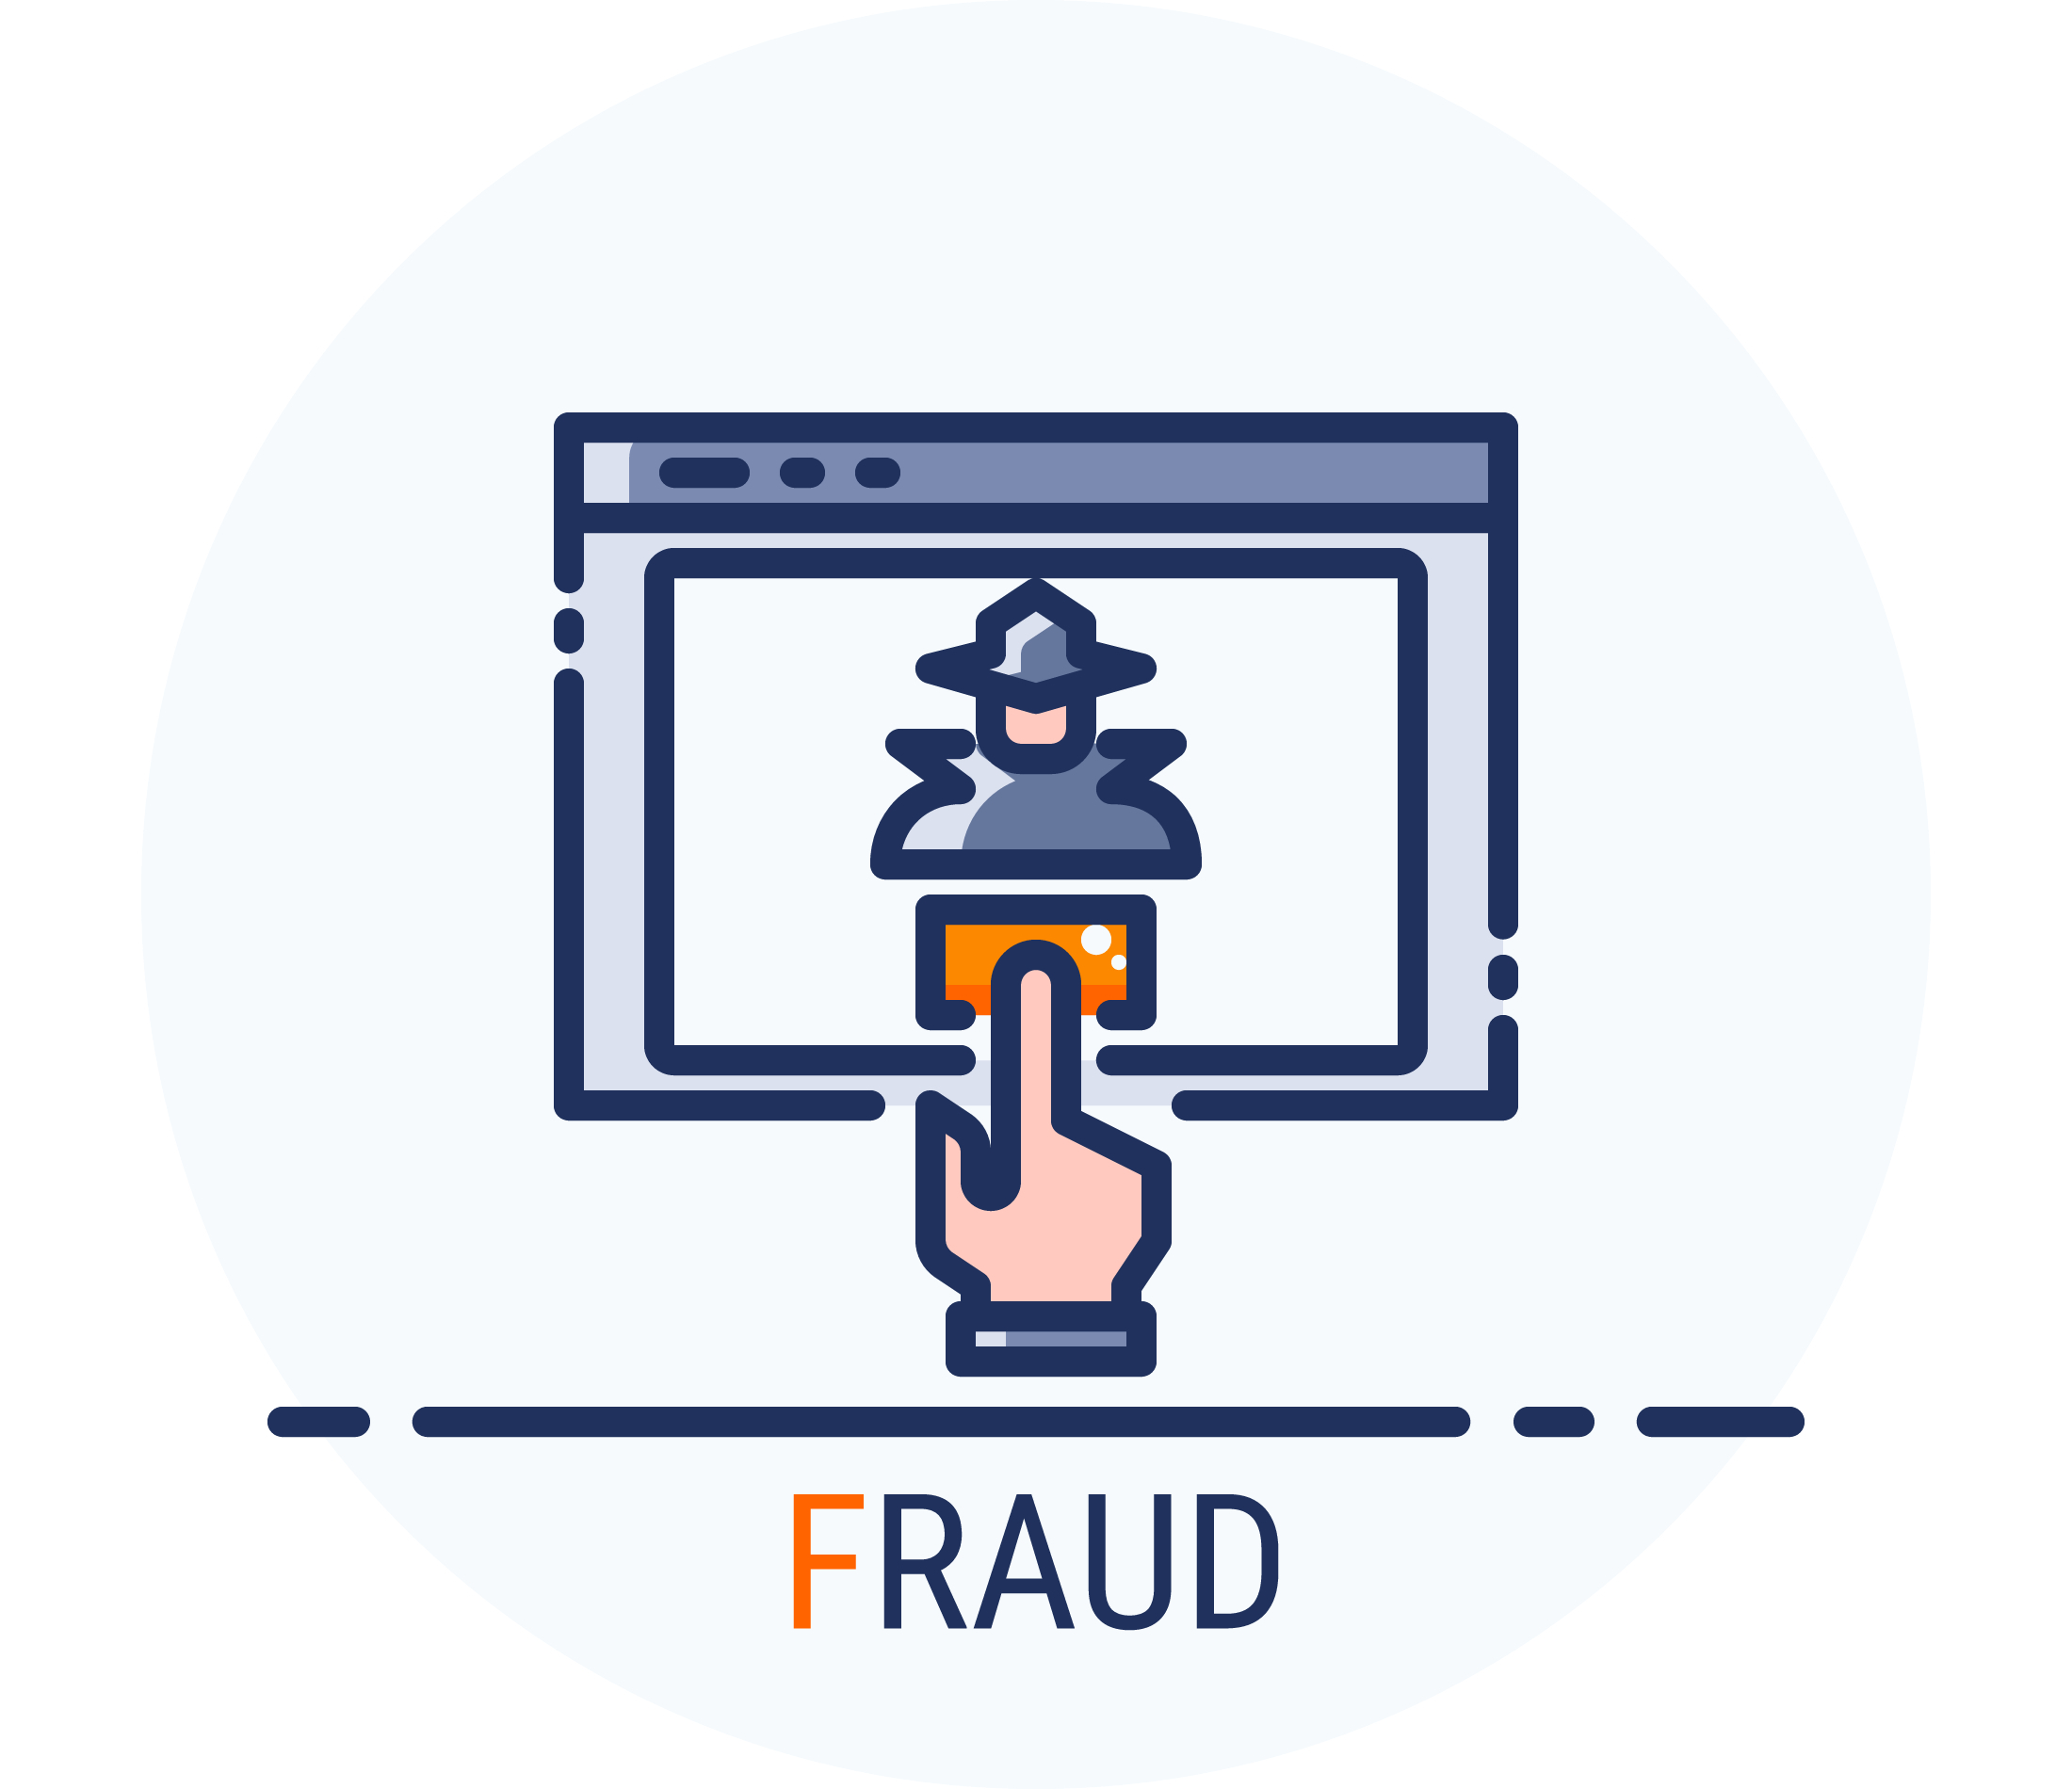 5 Common Types of Mobile Ad Fraud